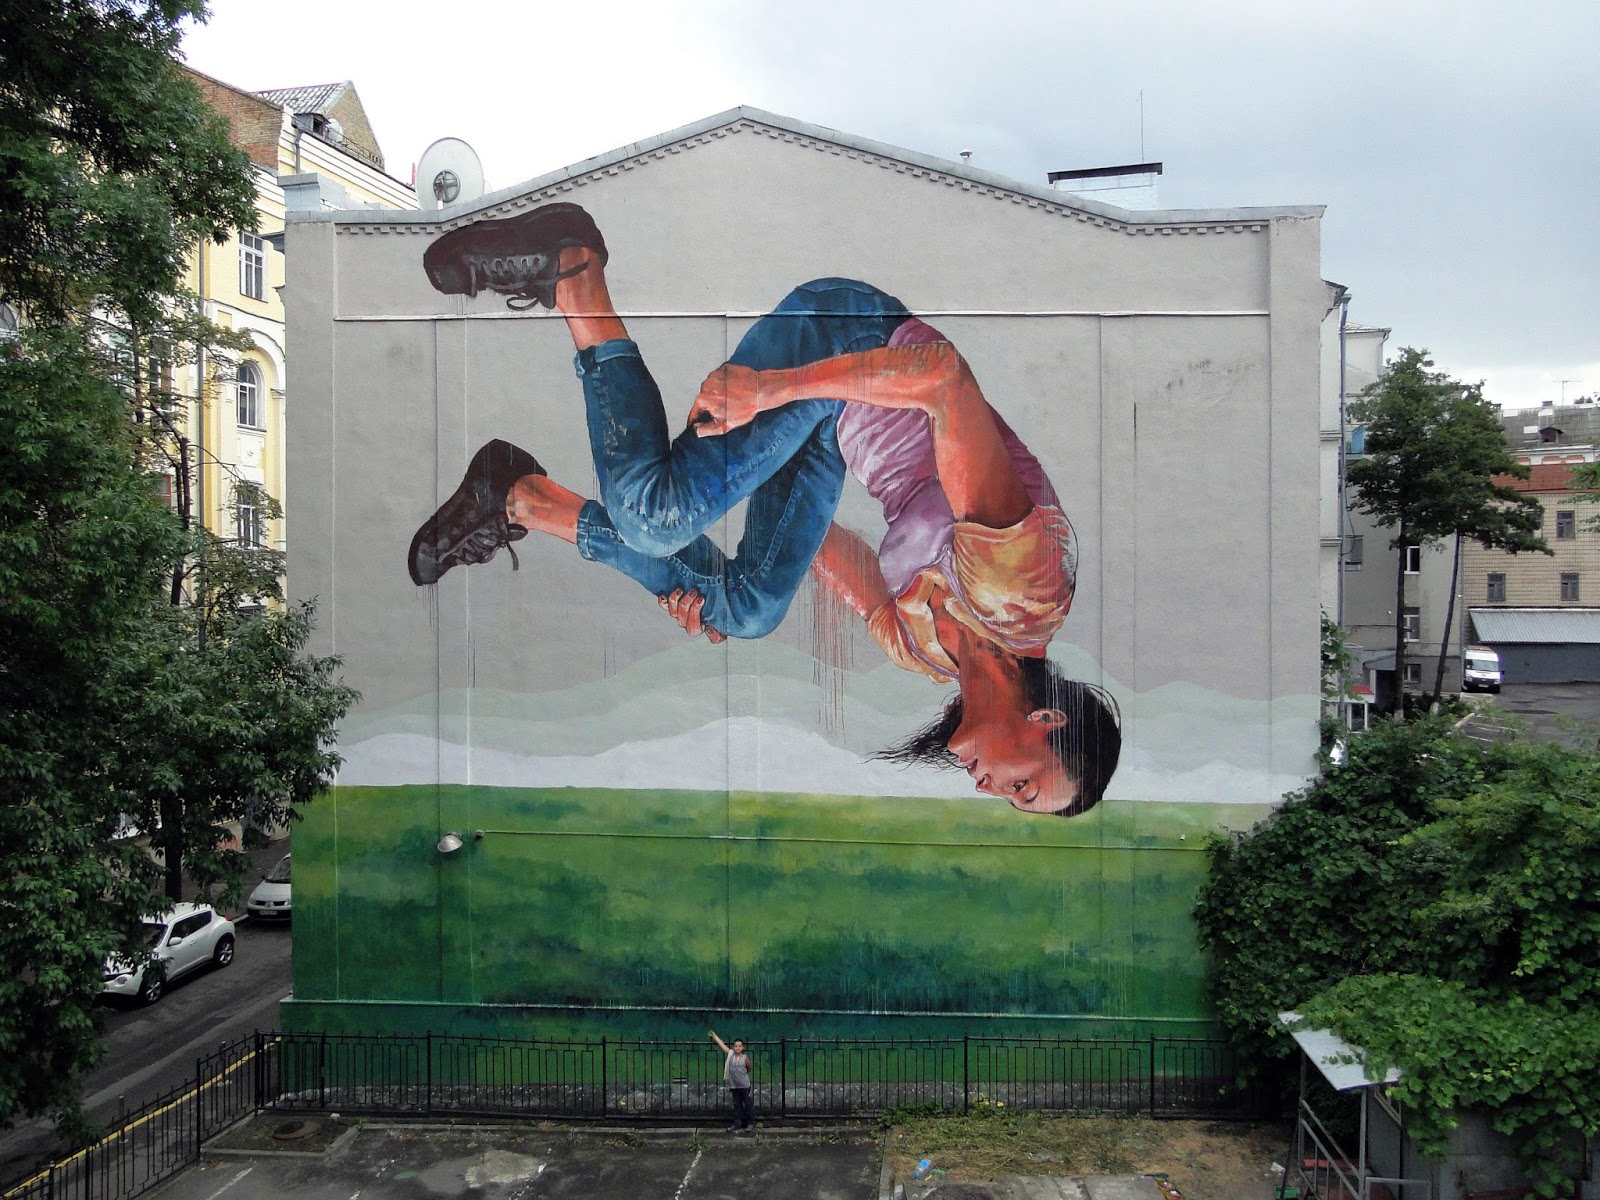 The dreamer, by Fintan Magee.